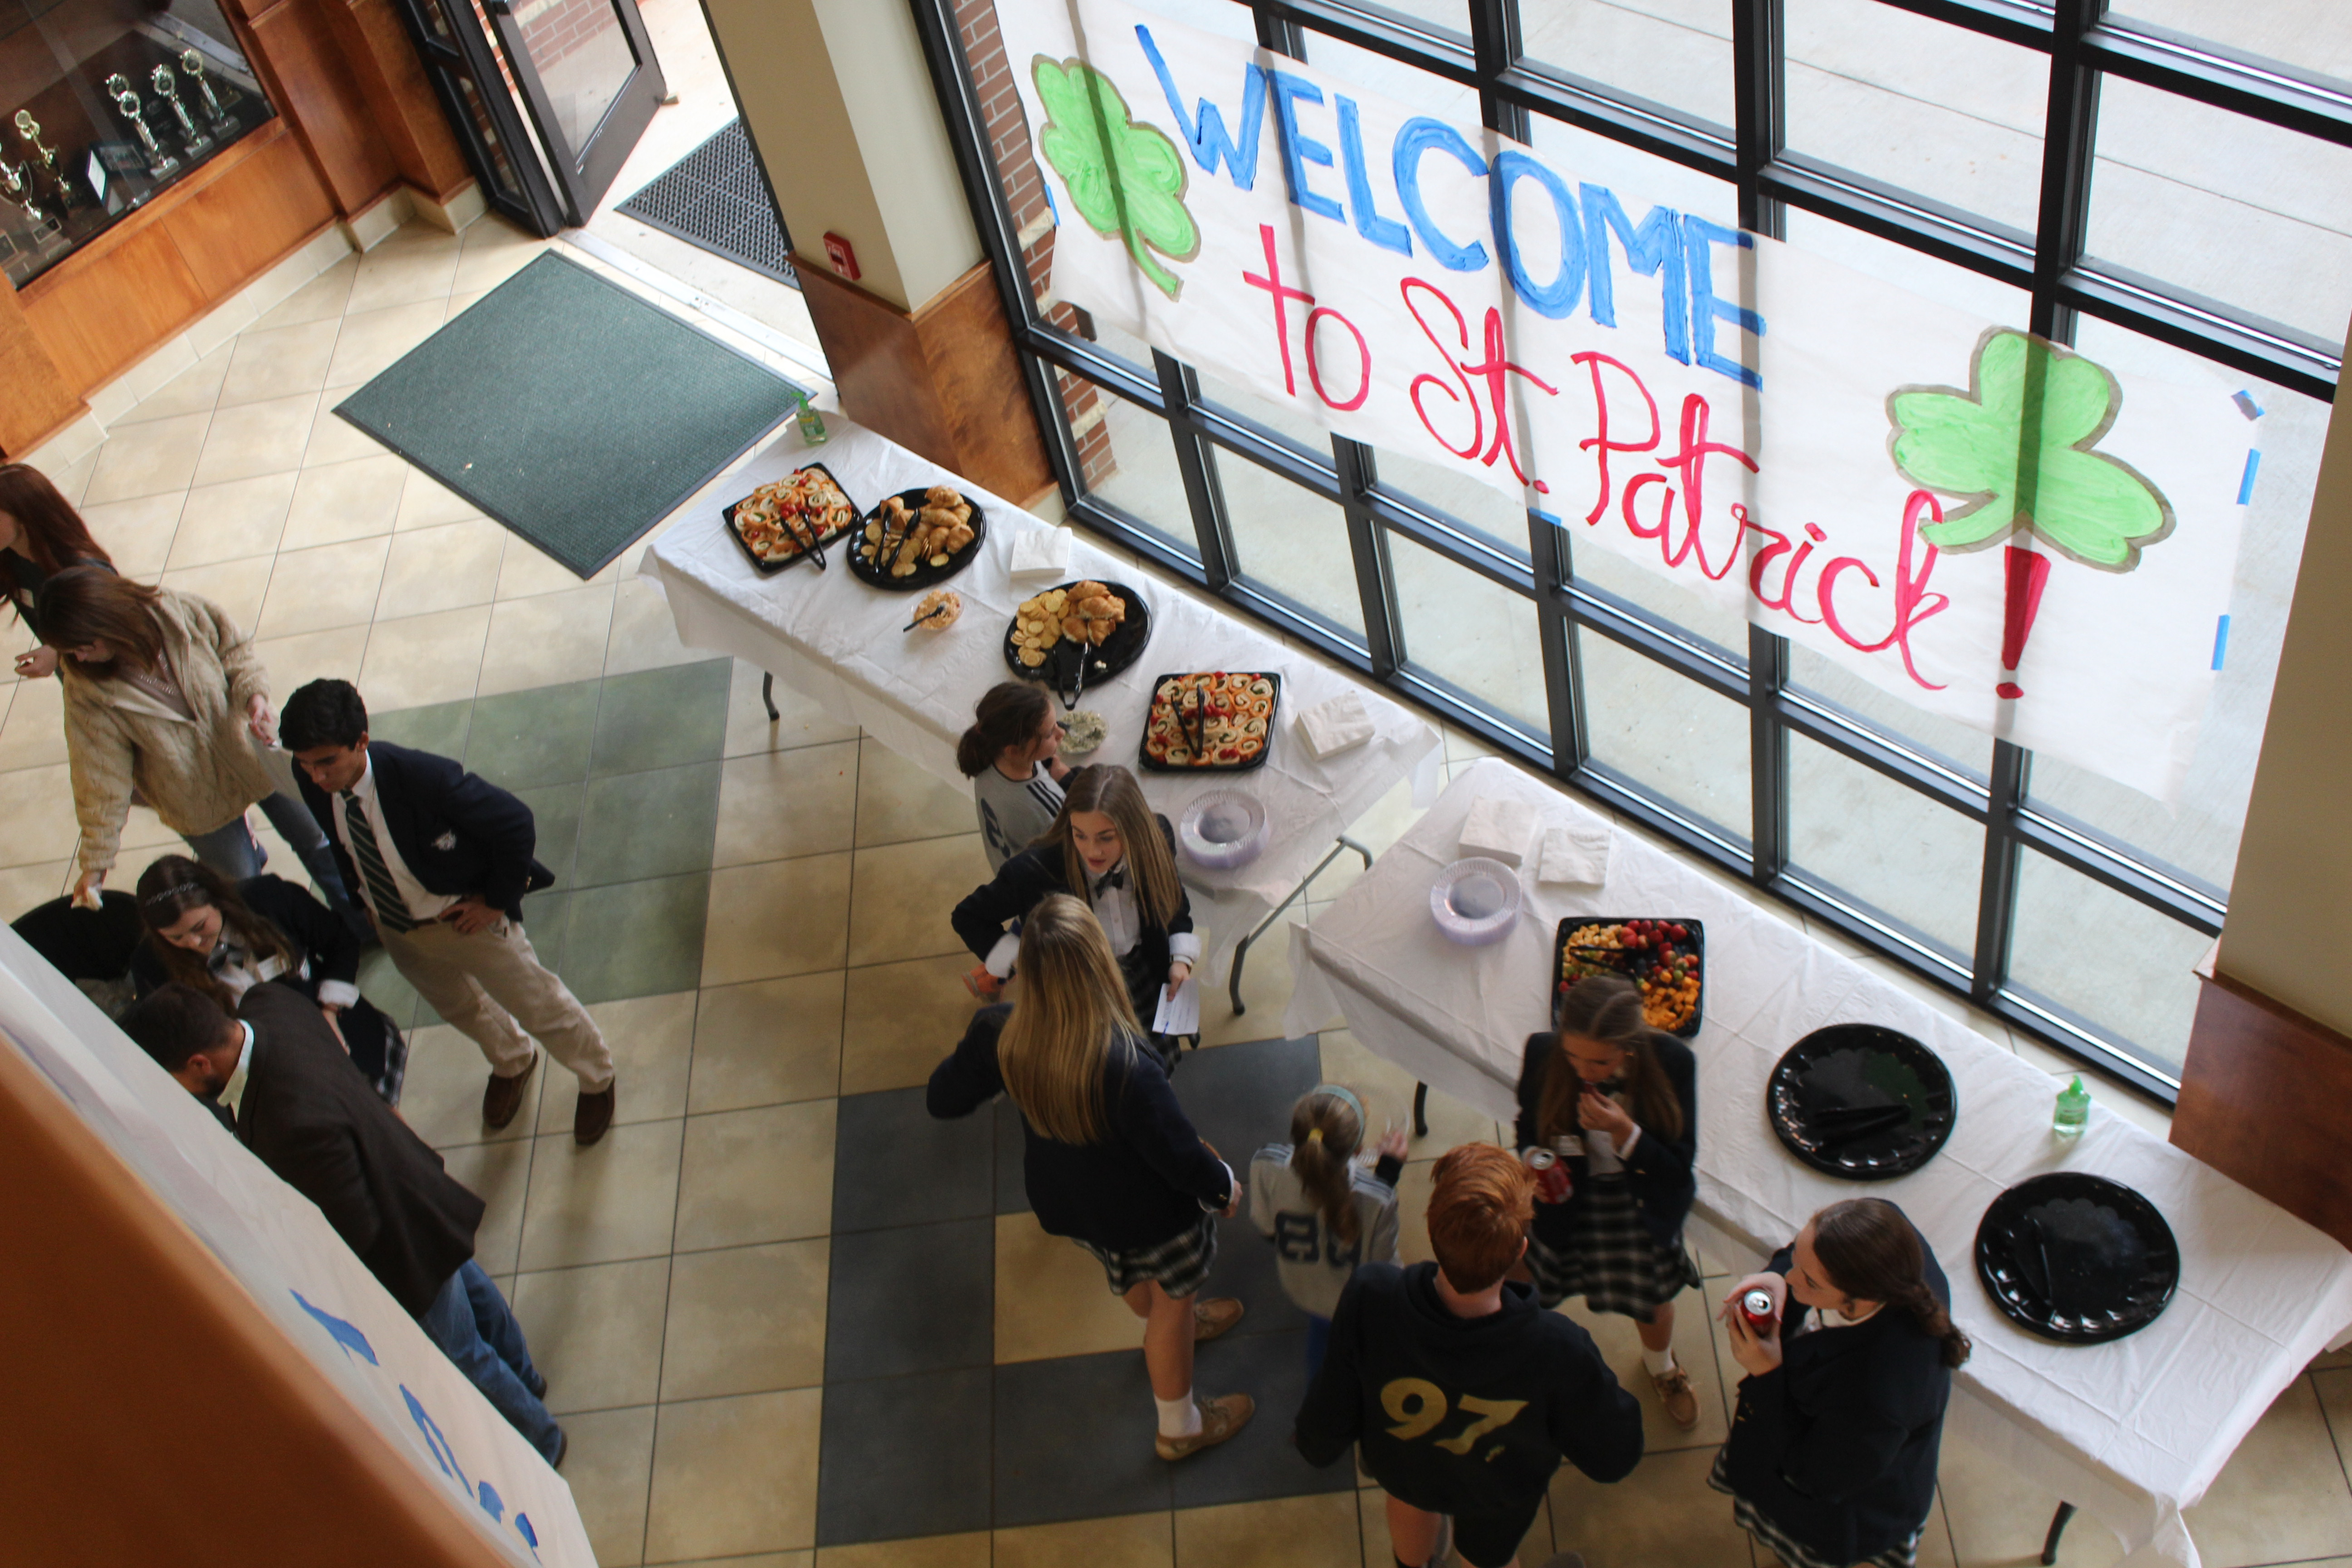 St. Patrick welcomes hundreds to campus during Fall Open House 2018